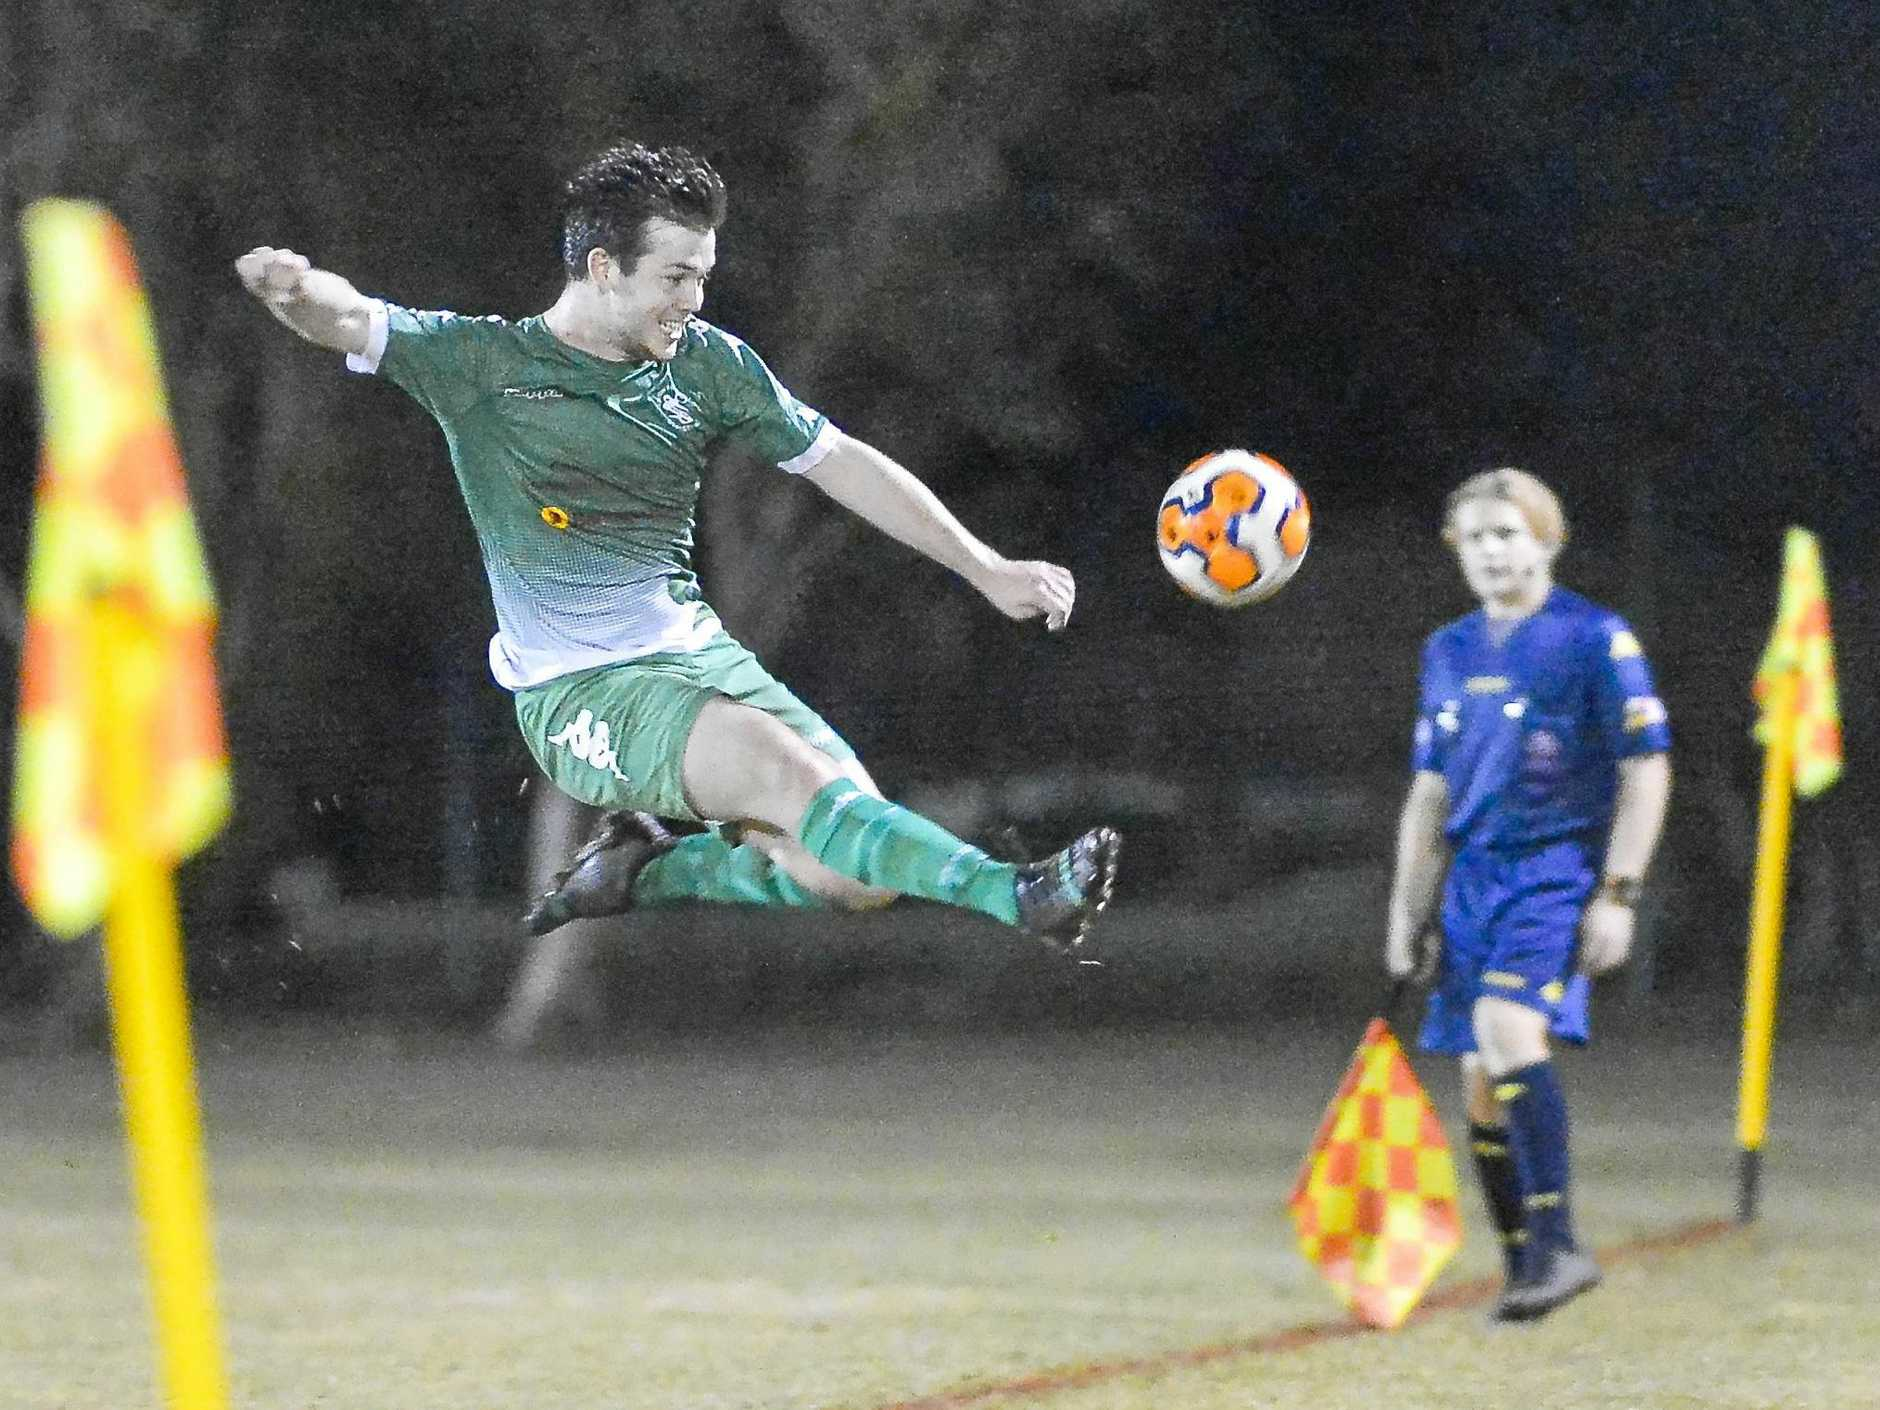 Clinton's Ethan Munster works hard to keep the ball in against Frenchville.